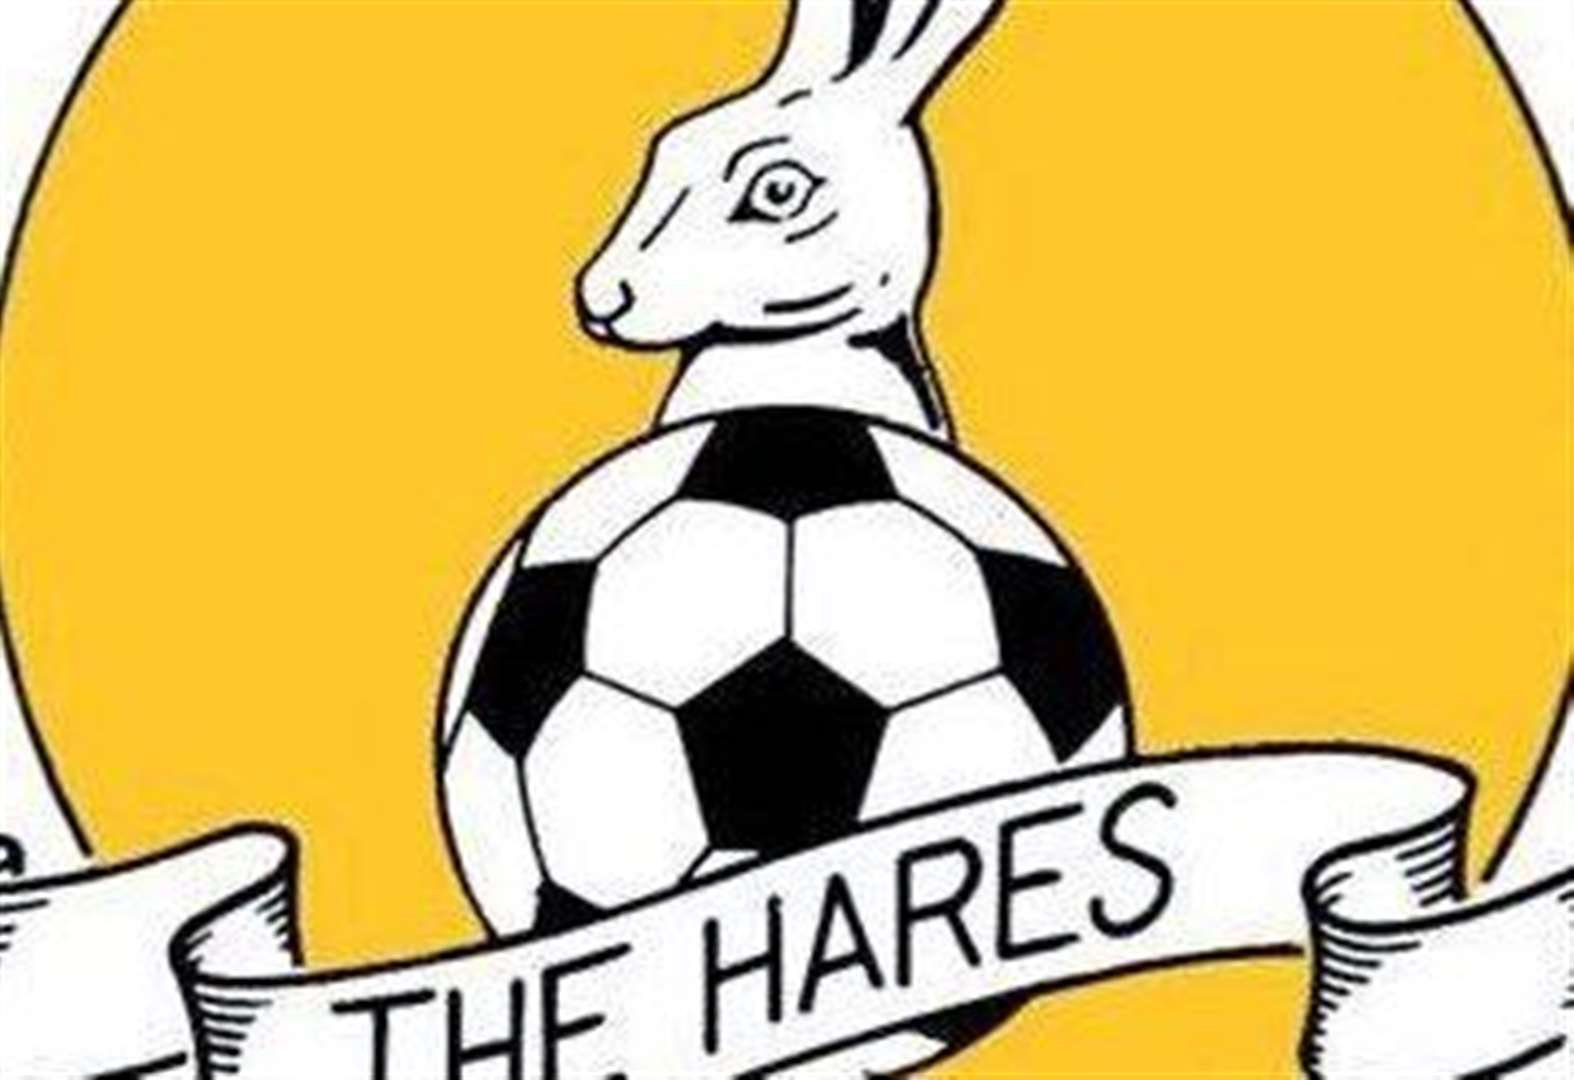 Football: Hares' manager reaction to win at Felixstowe Res